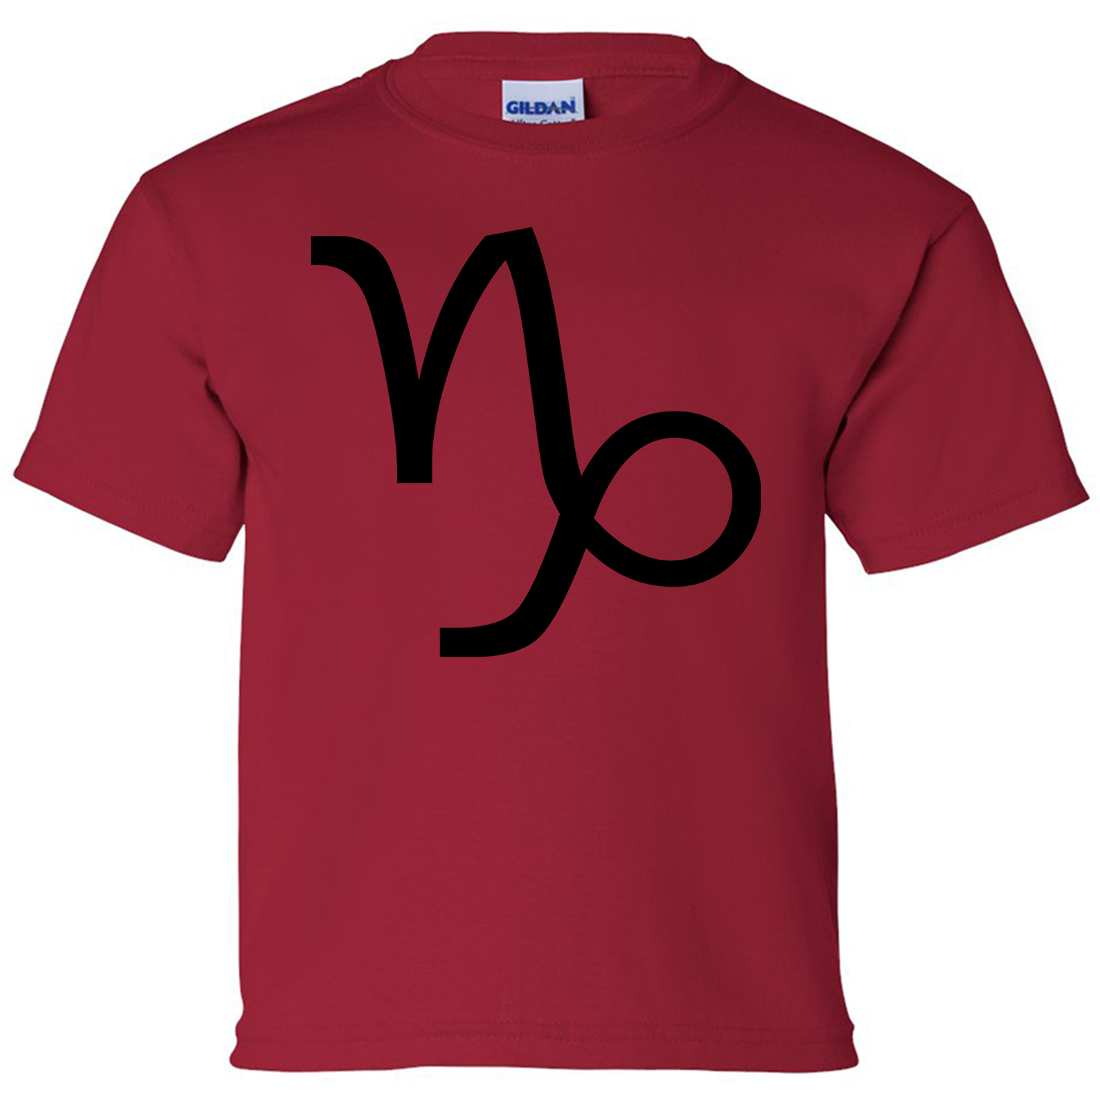 Capricorn astrology symbol asst colors youth t shirt tee for Cardinal color t shirts